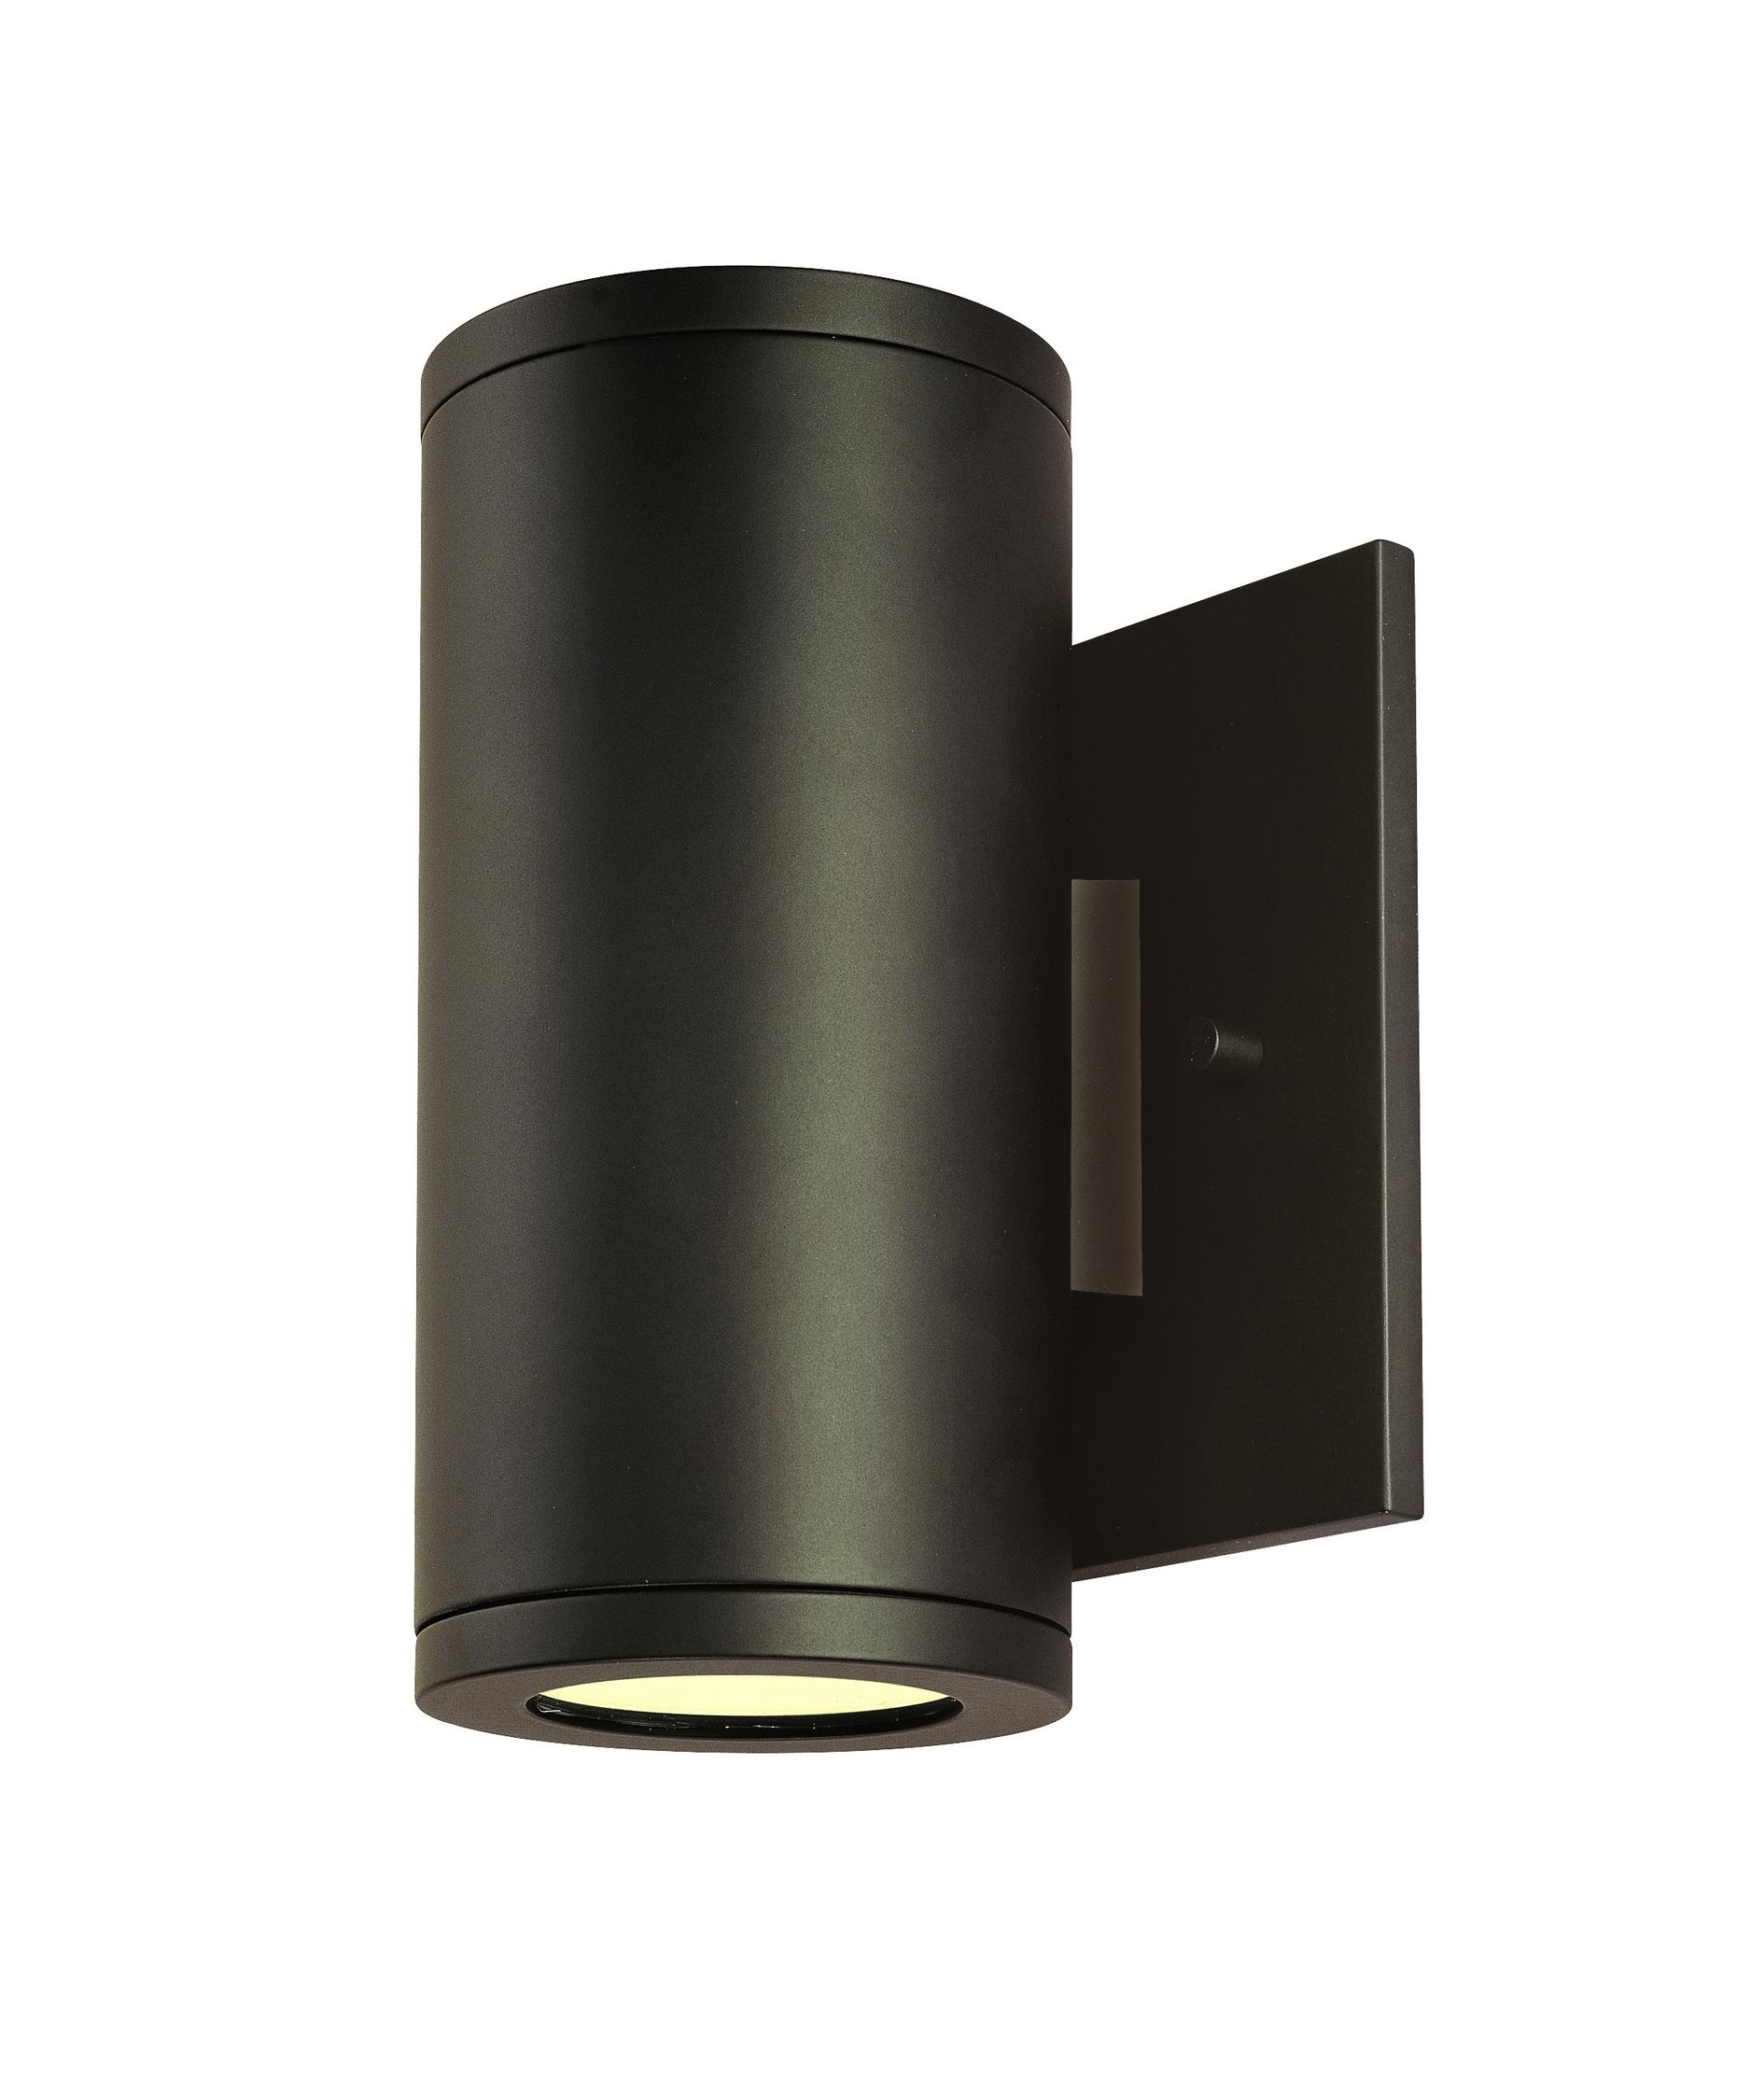 Outdoor Wall Lighting Fixtures At Amazon With Regard To Best And Newest Csl Lighting Ss1020a Silo Outdoor Wall Light (View 6 of 20)